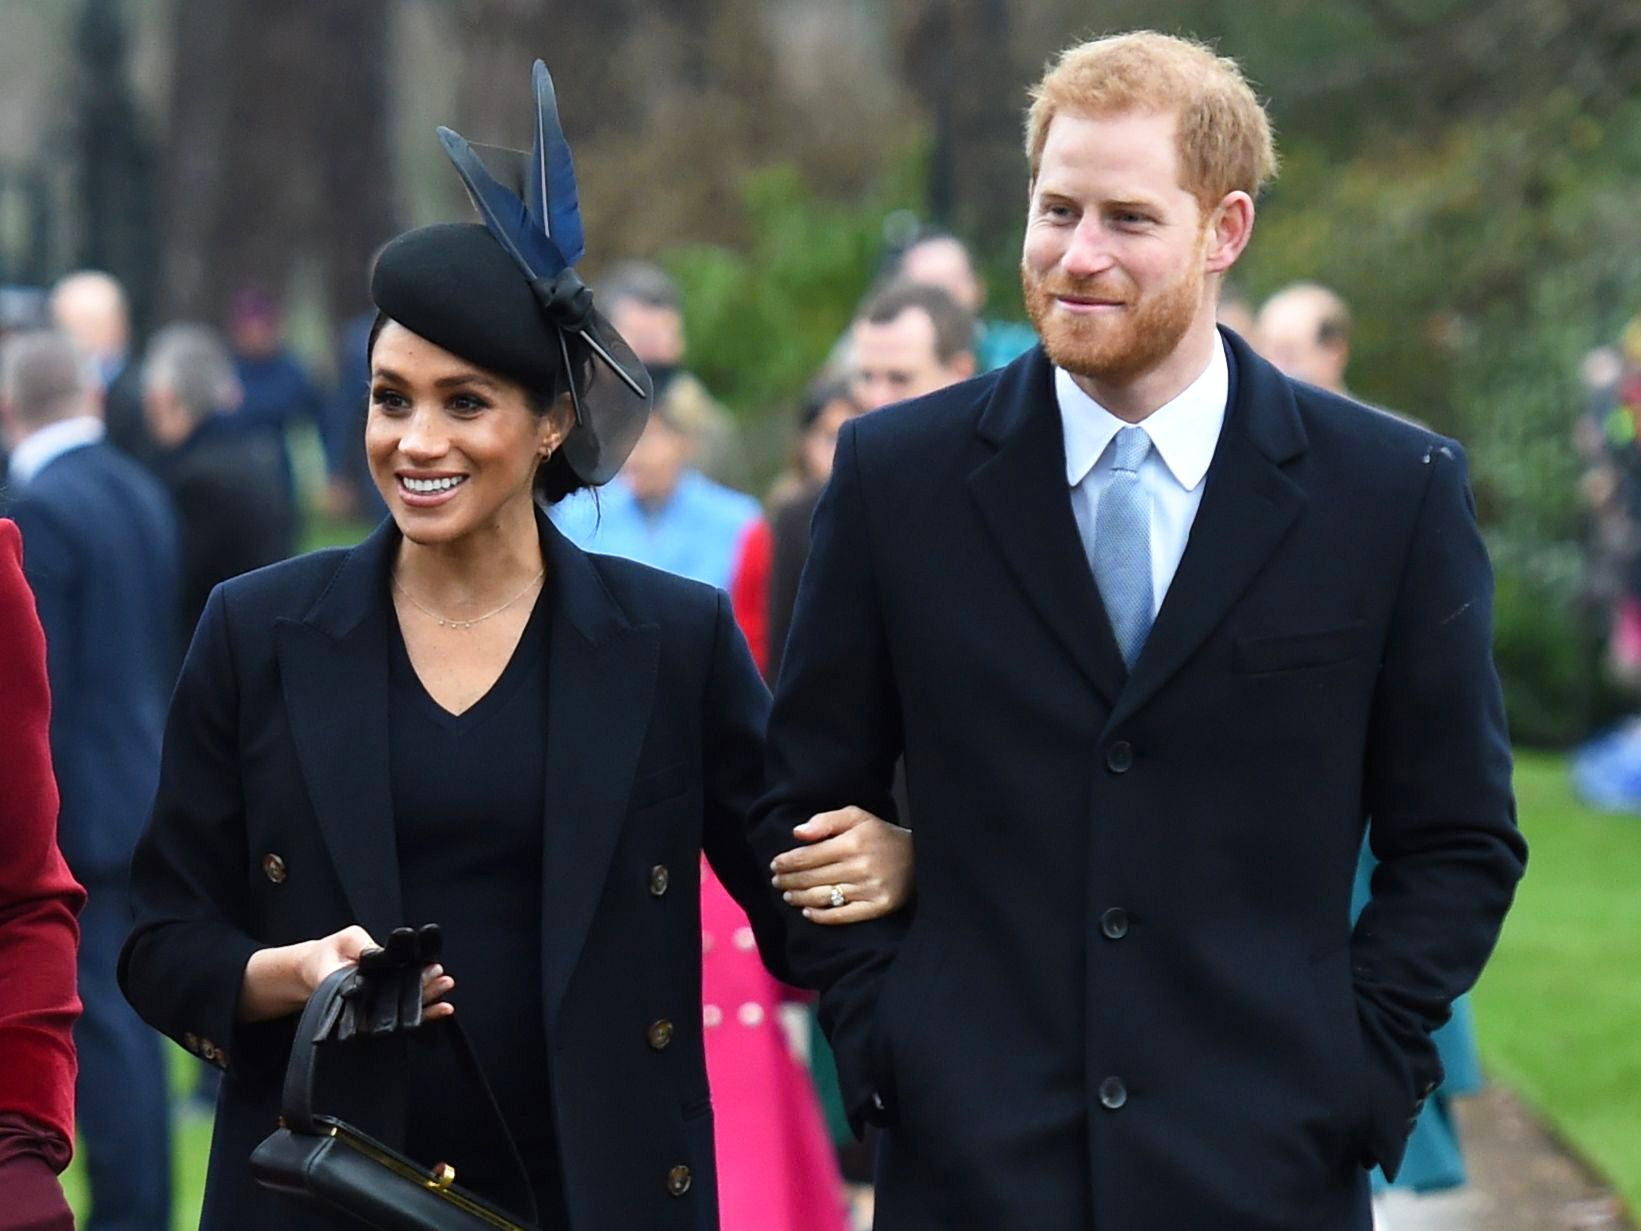 Meghan Markle, Prince Harry, and Archie Will Be Spending Christmas With Her Mom, Not the Royal Family